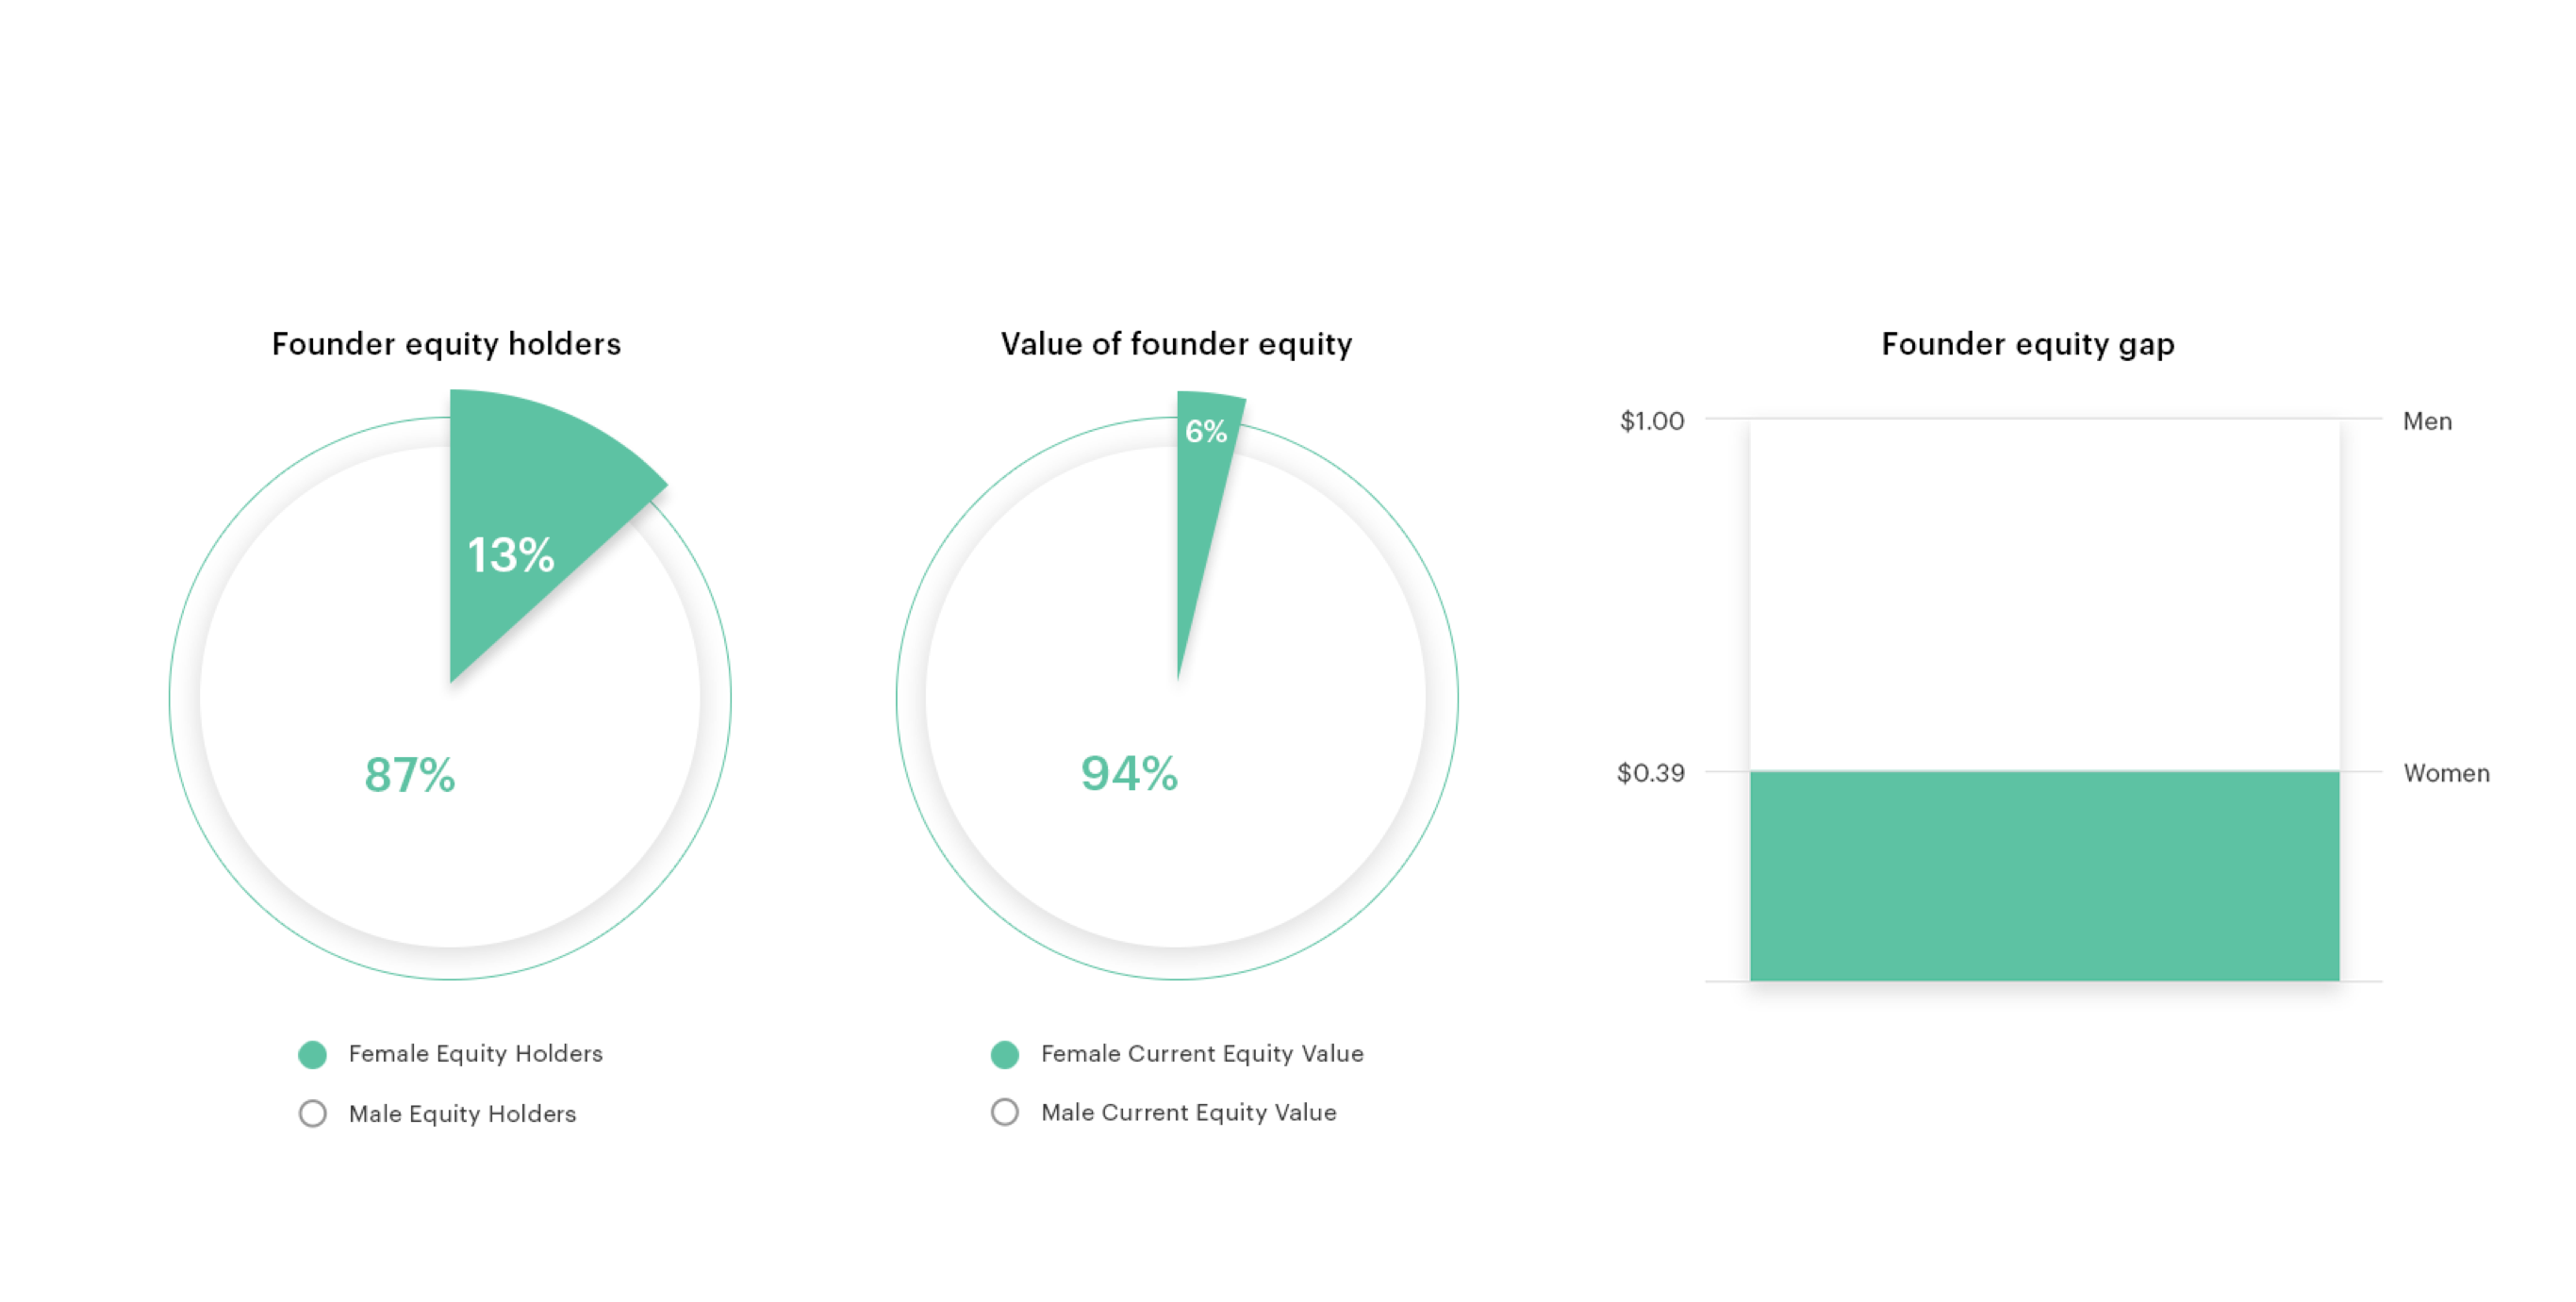 Analyzing the gender equity gap 3